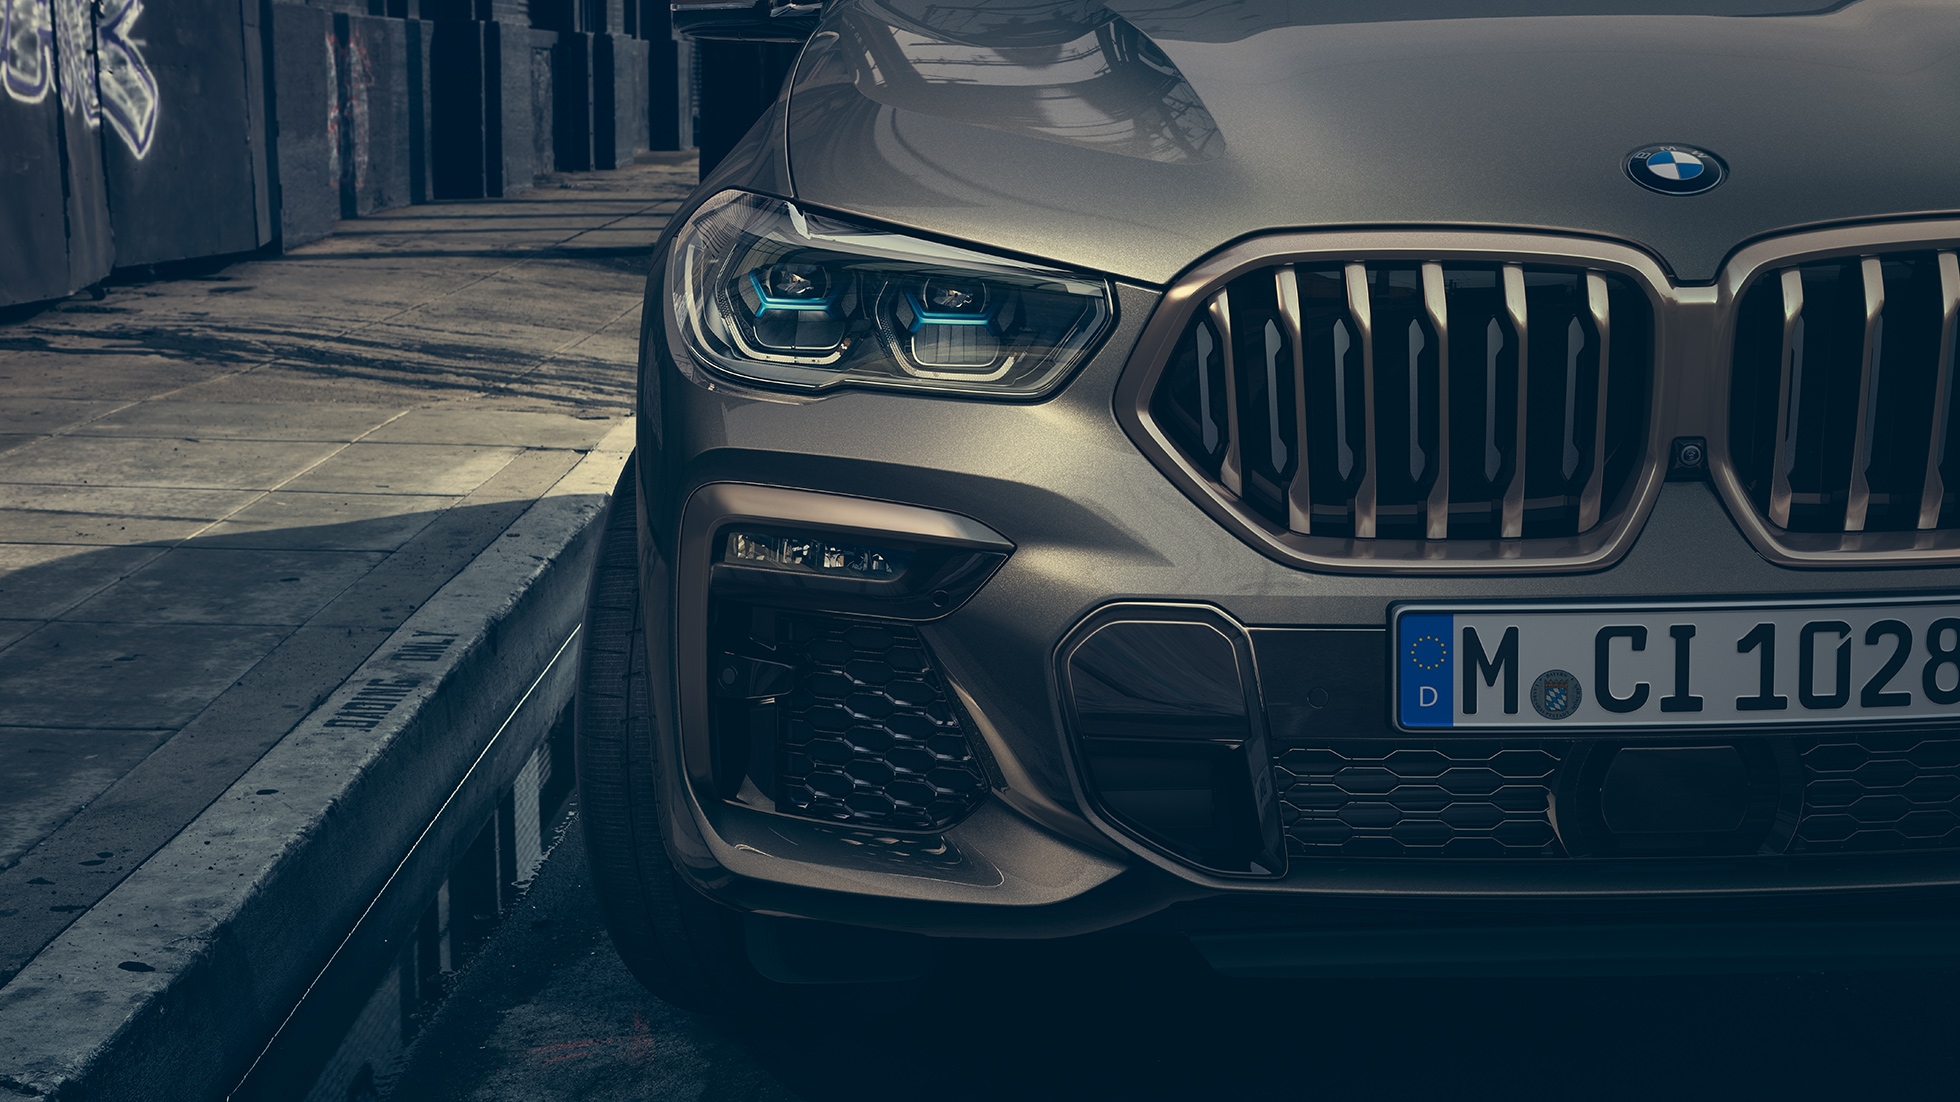 Close-up of the BMW X6 with focus on Laserlight.